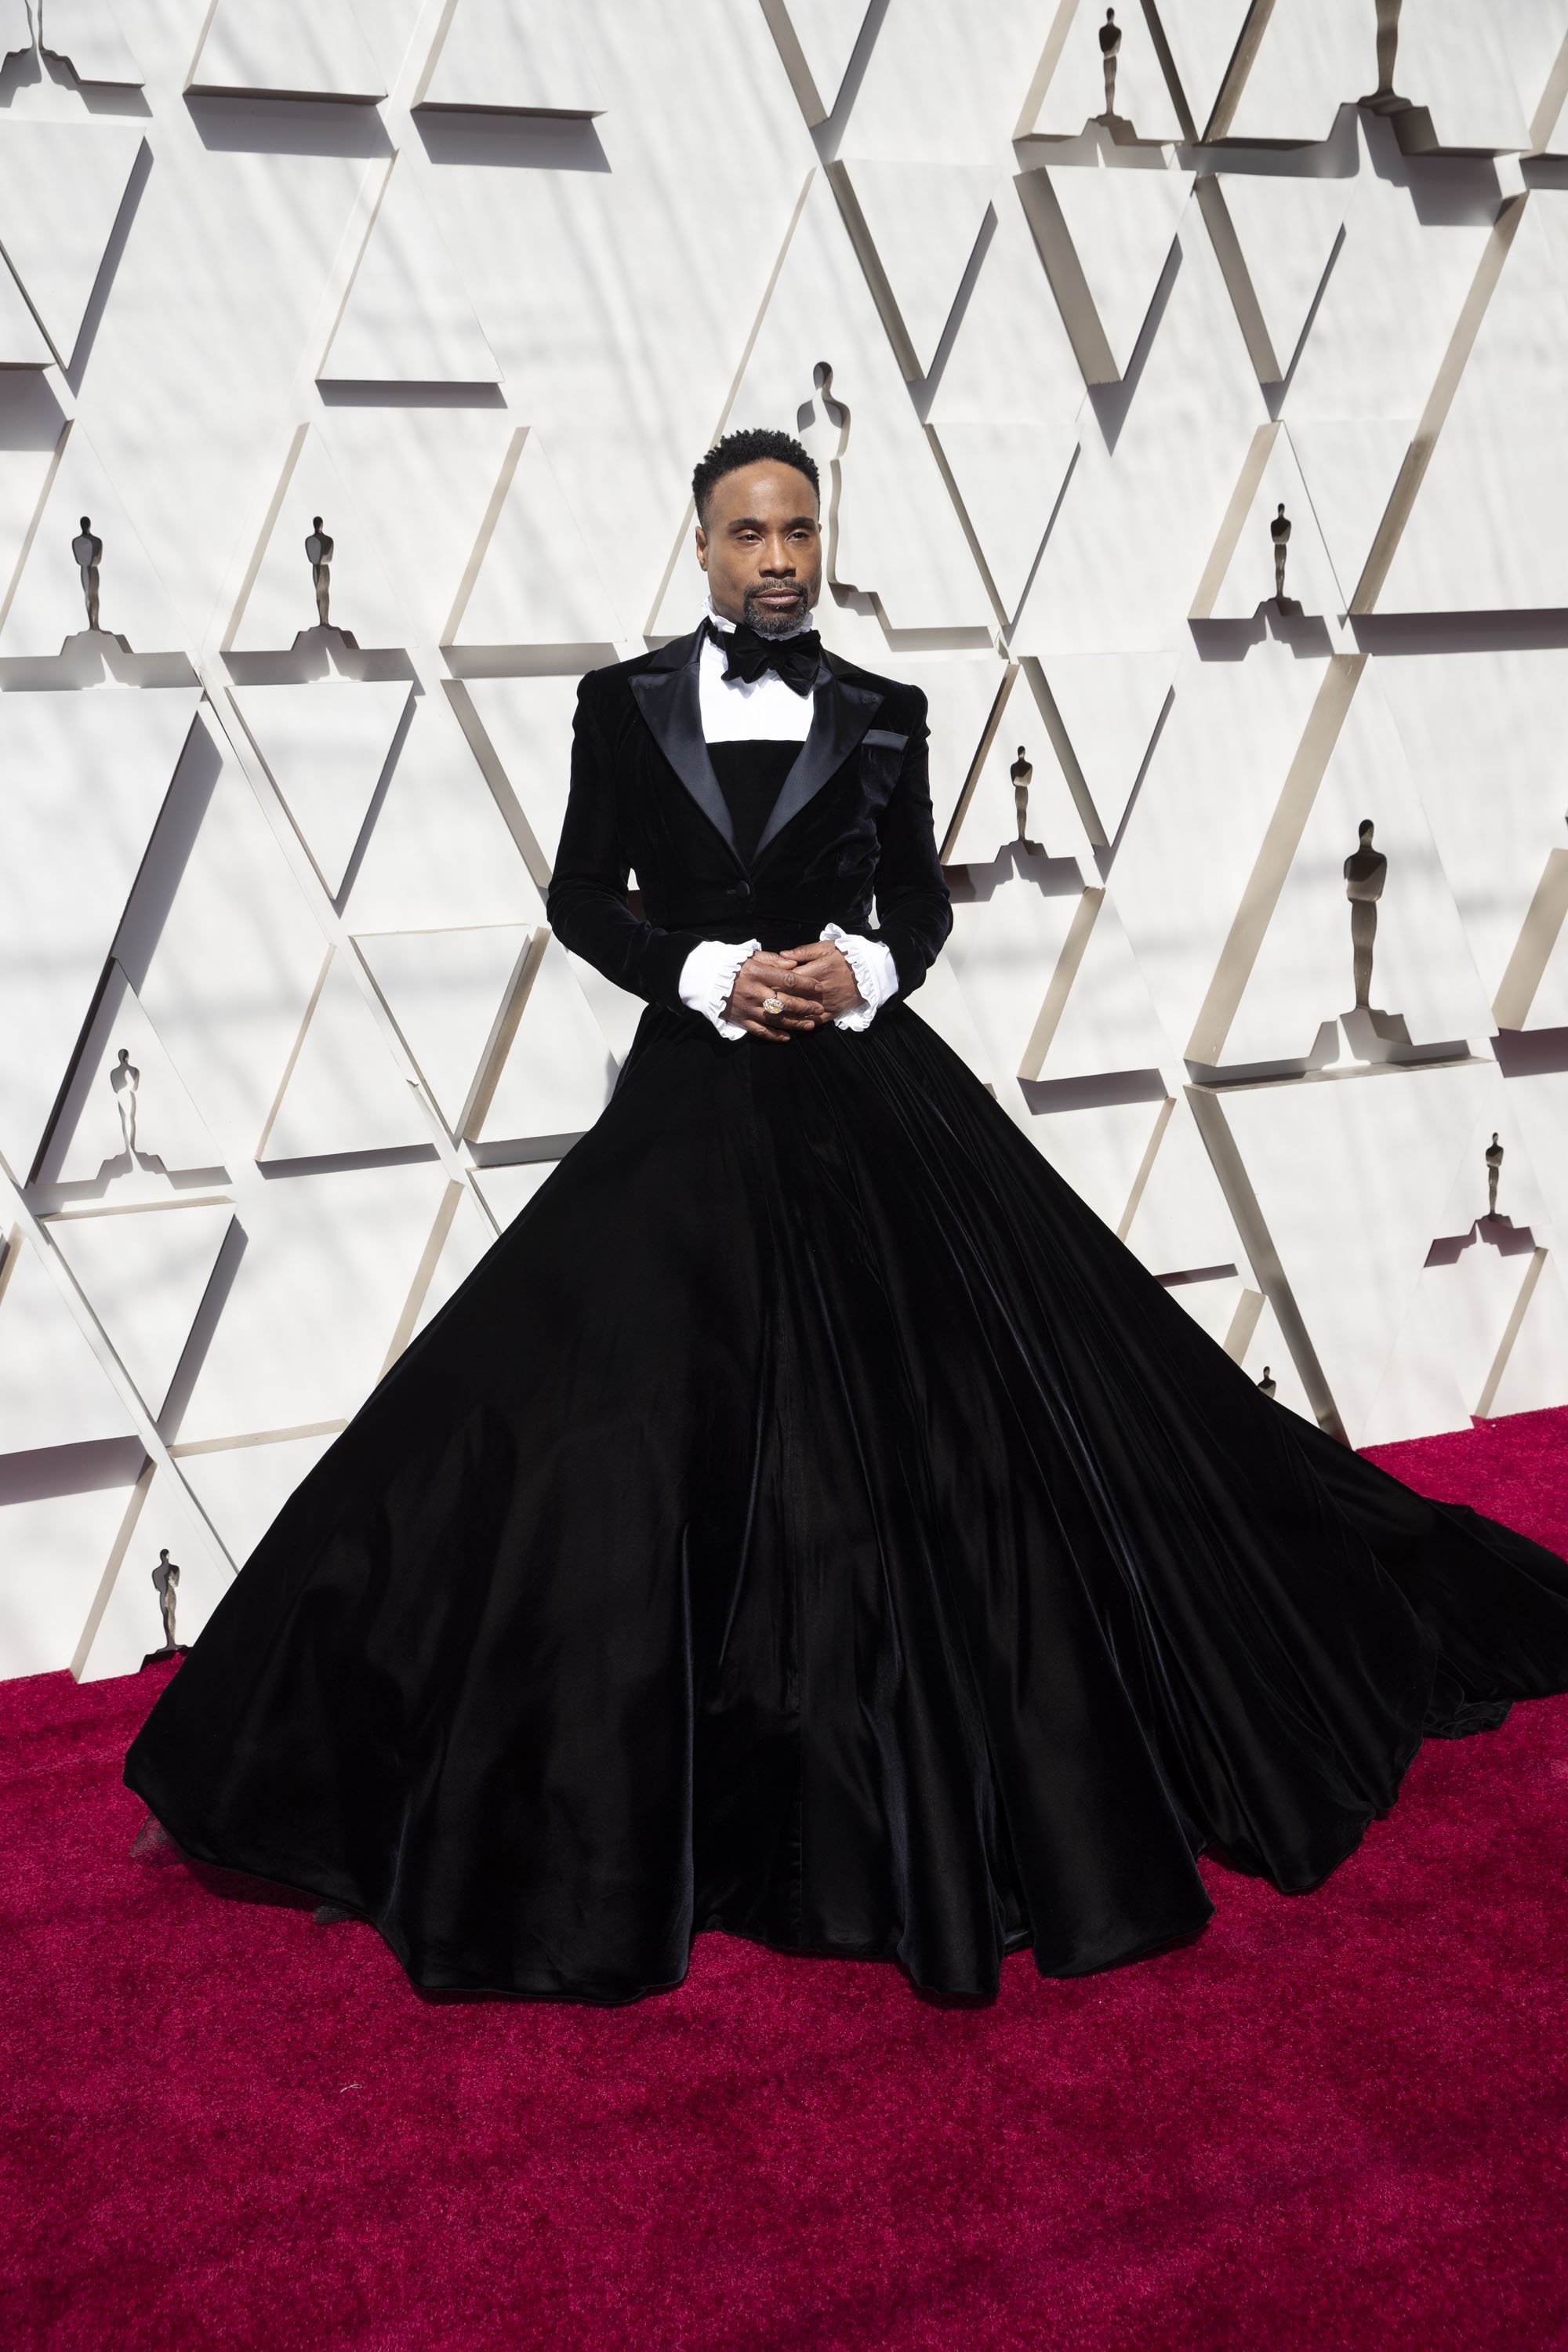 Billy Porter: Red Carpet from the The 91st Oscar broadcast on Sunday, Feb. 24, 2019, at the Dolby Theatre.